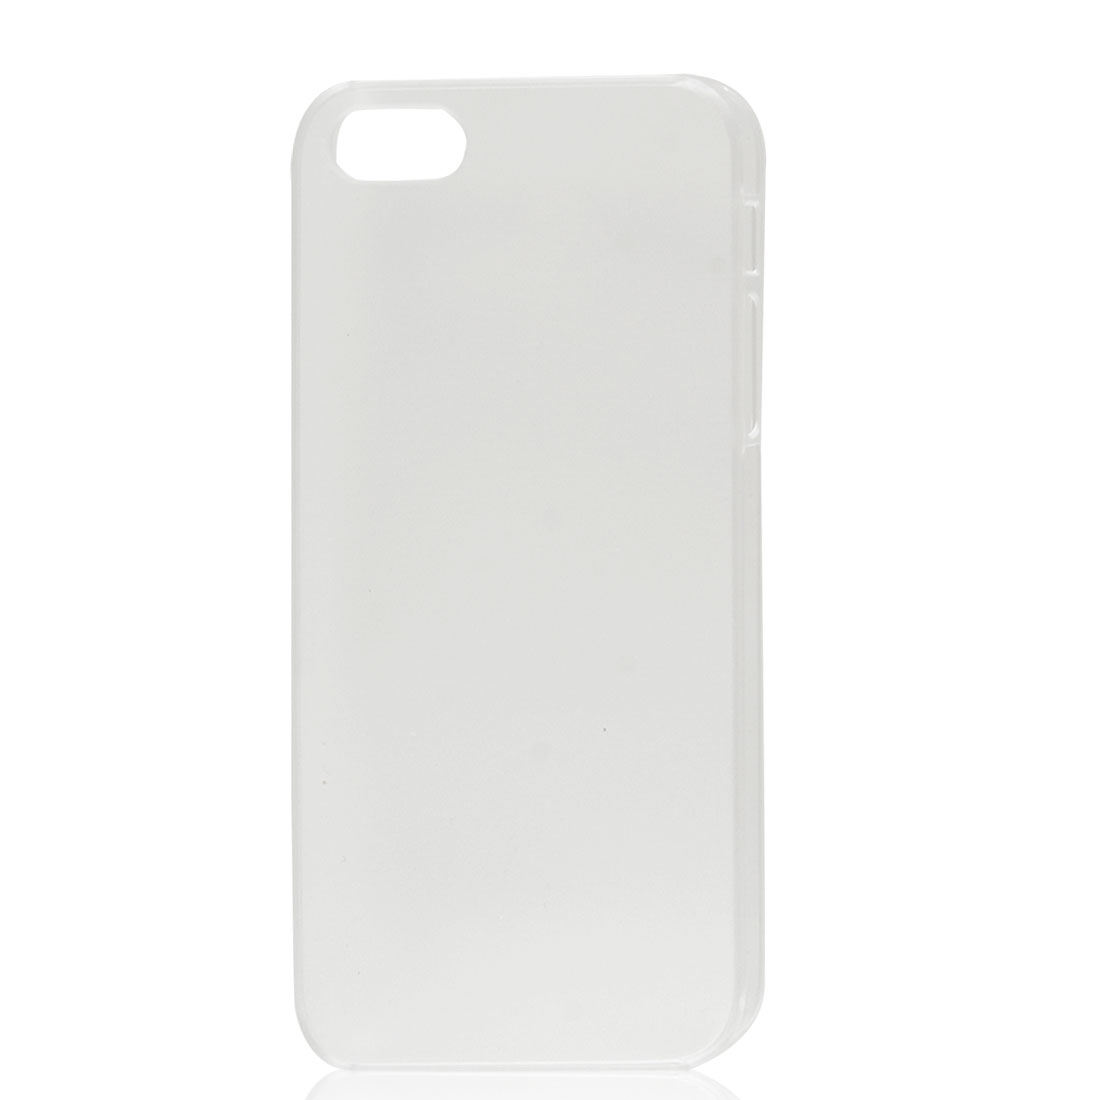 Slim Clear Back Case Protective Cover Skin for Apple iPhone 5 5G